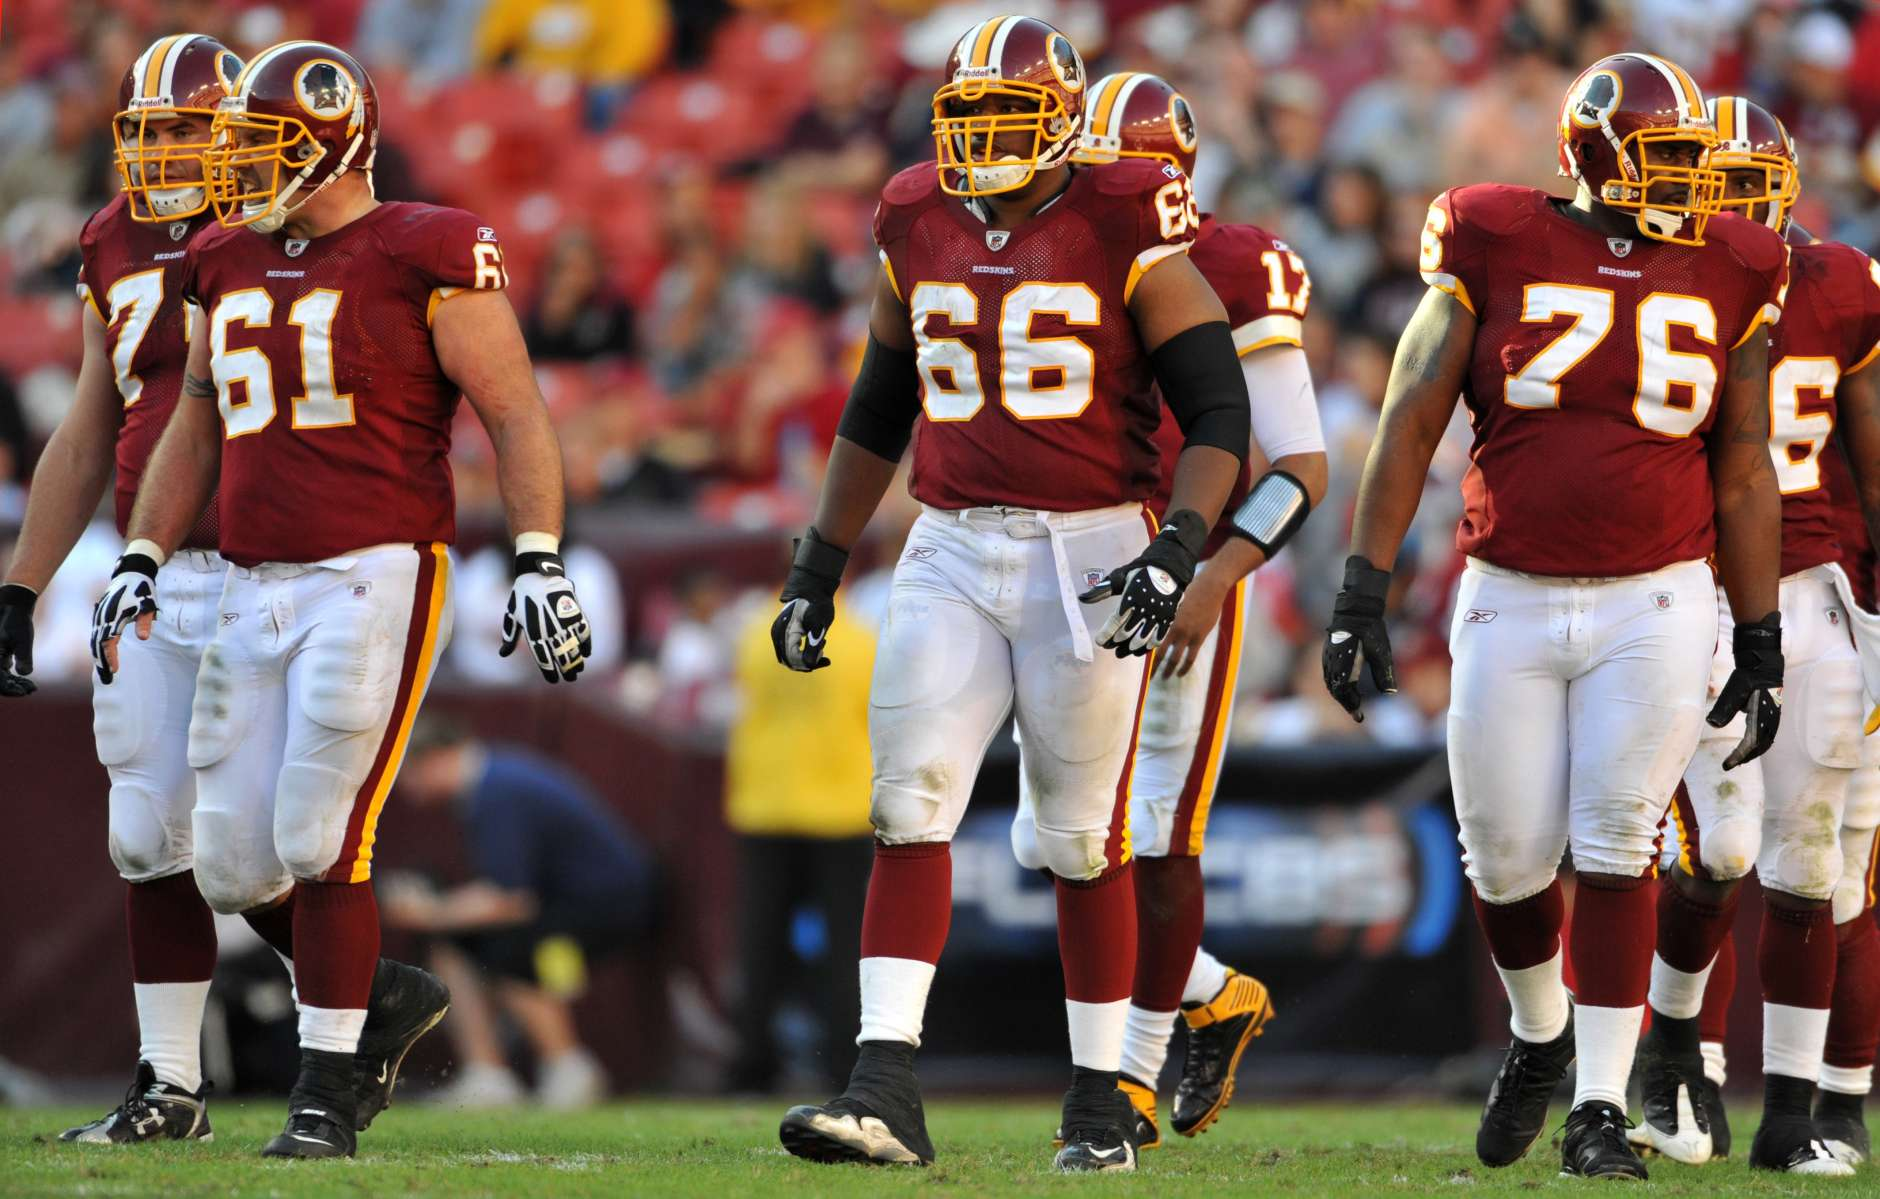 LANDOVER, MD - NOVEMBER 15:  Derrick Dockery #66 of the Washington Redskins walks up to the line of scrimmage during the game against the Denver Broncos at FedExField on November 15, 2009 in Landover, Maryland. The Redskins won 27-17. (Photo by Larry French/Getty Images)